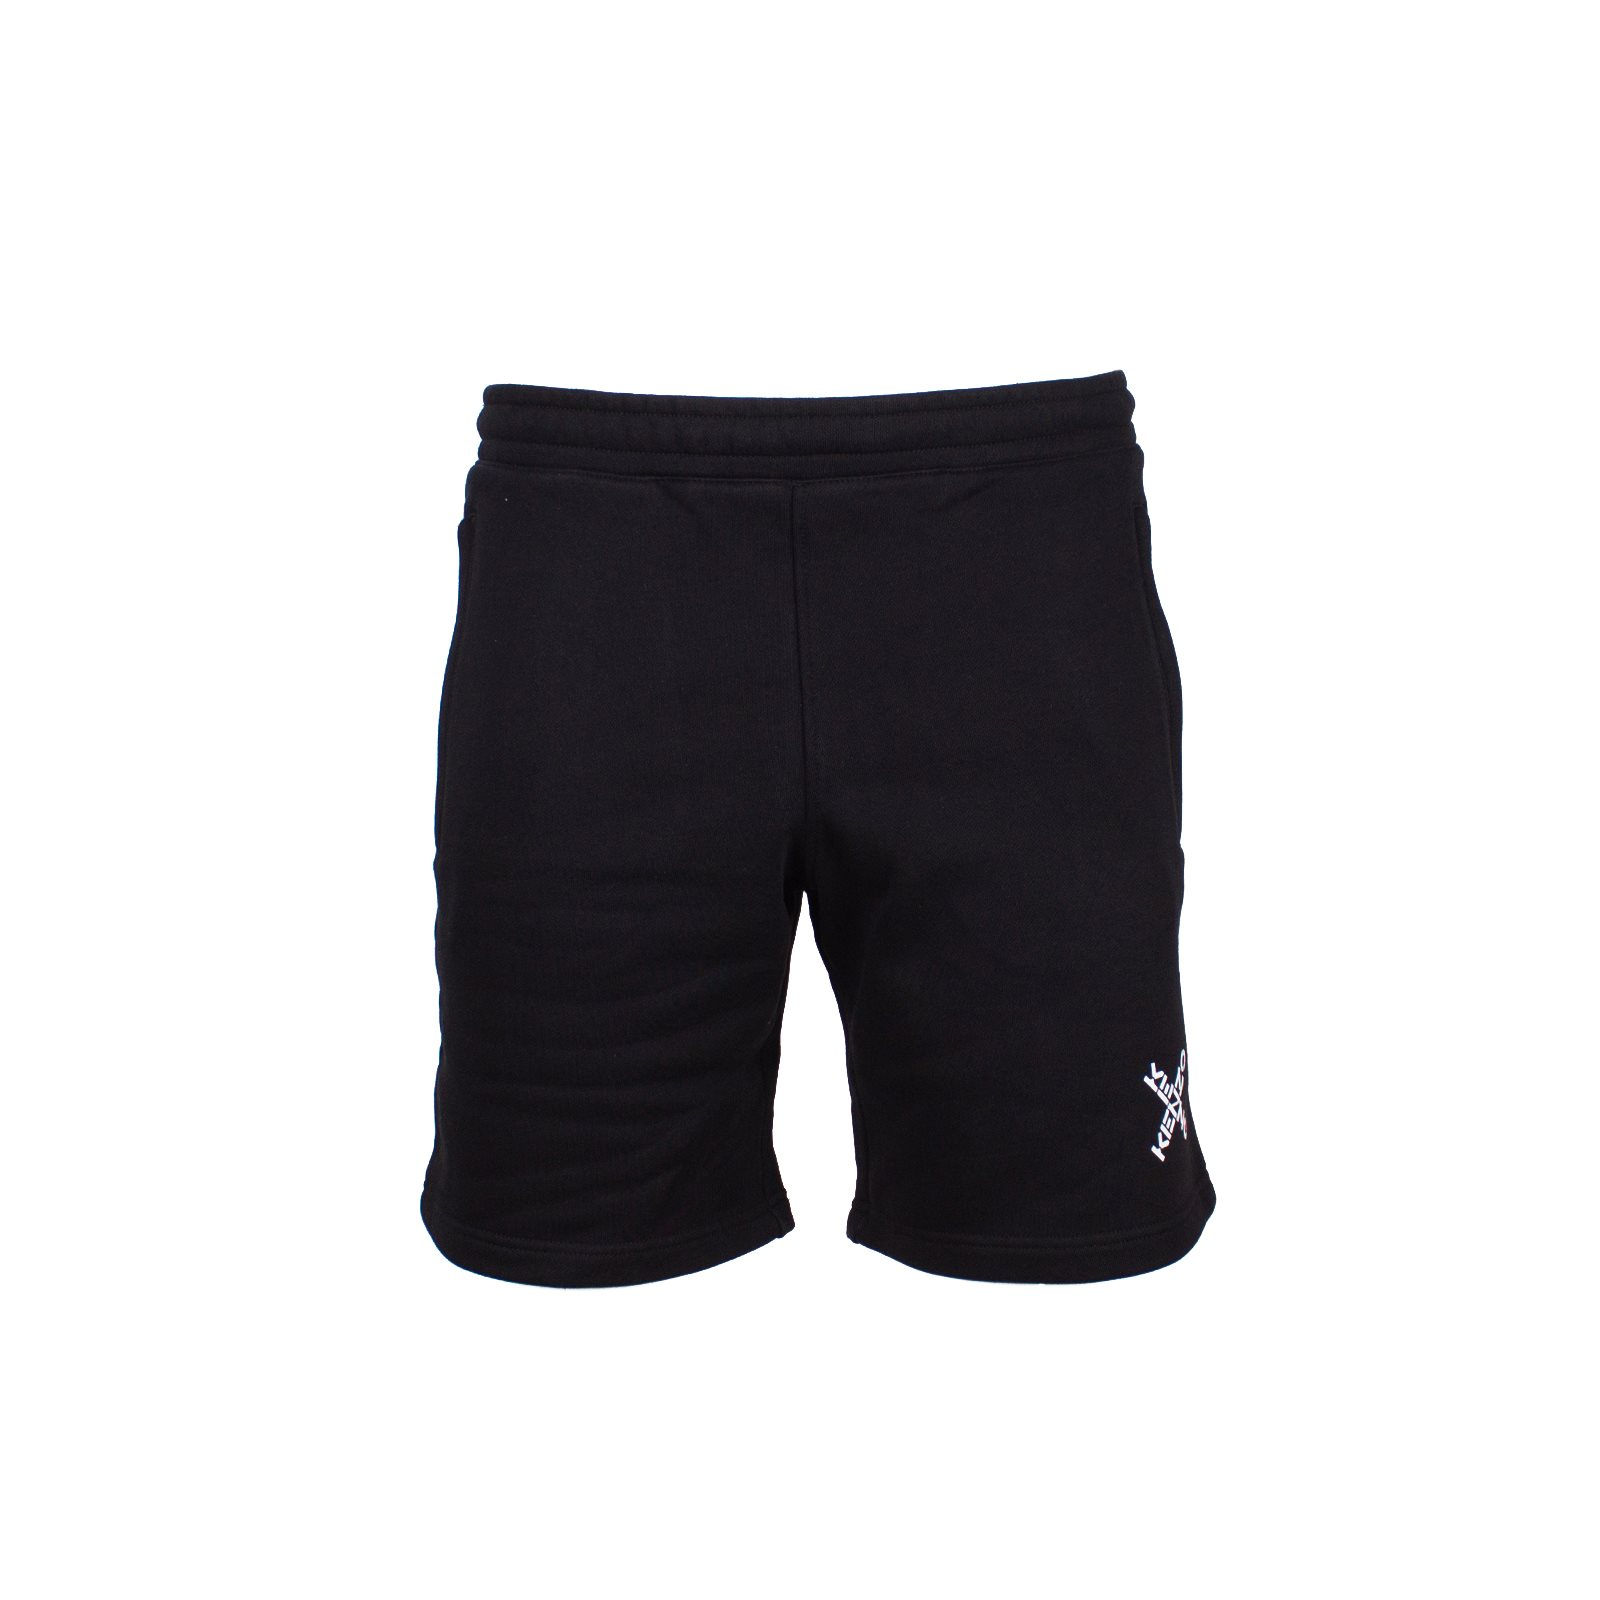 JOGGINGS TROUSER